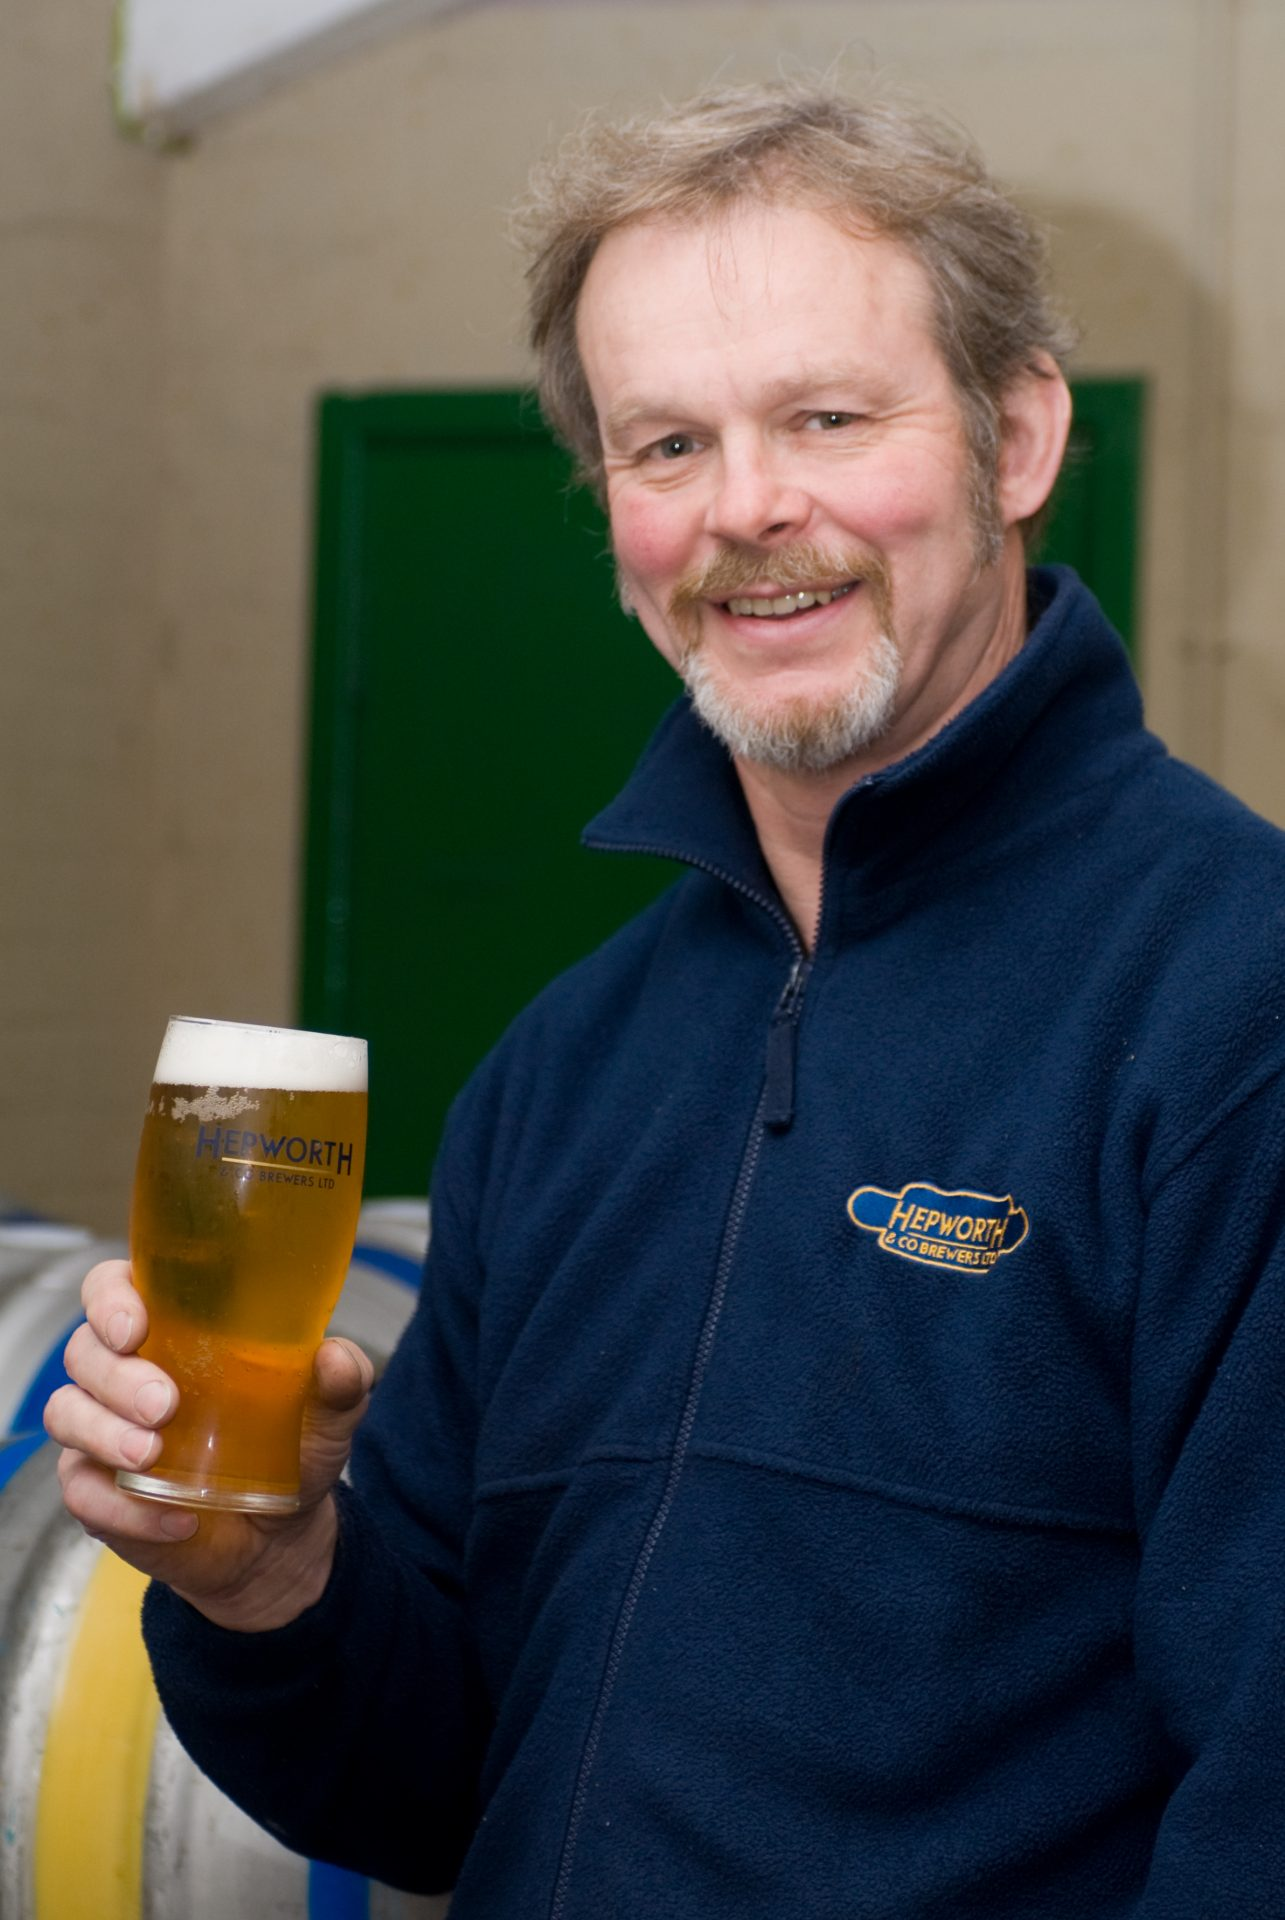 Hepworth Brewery Interview: Pure and Sussex